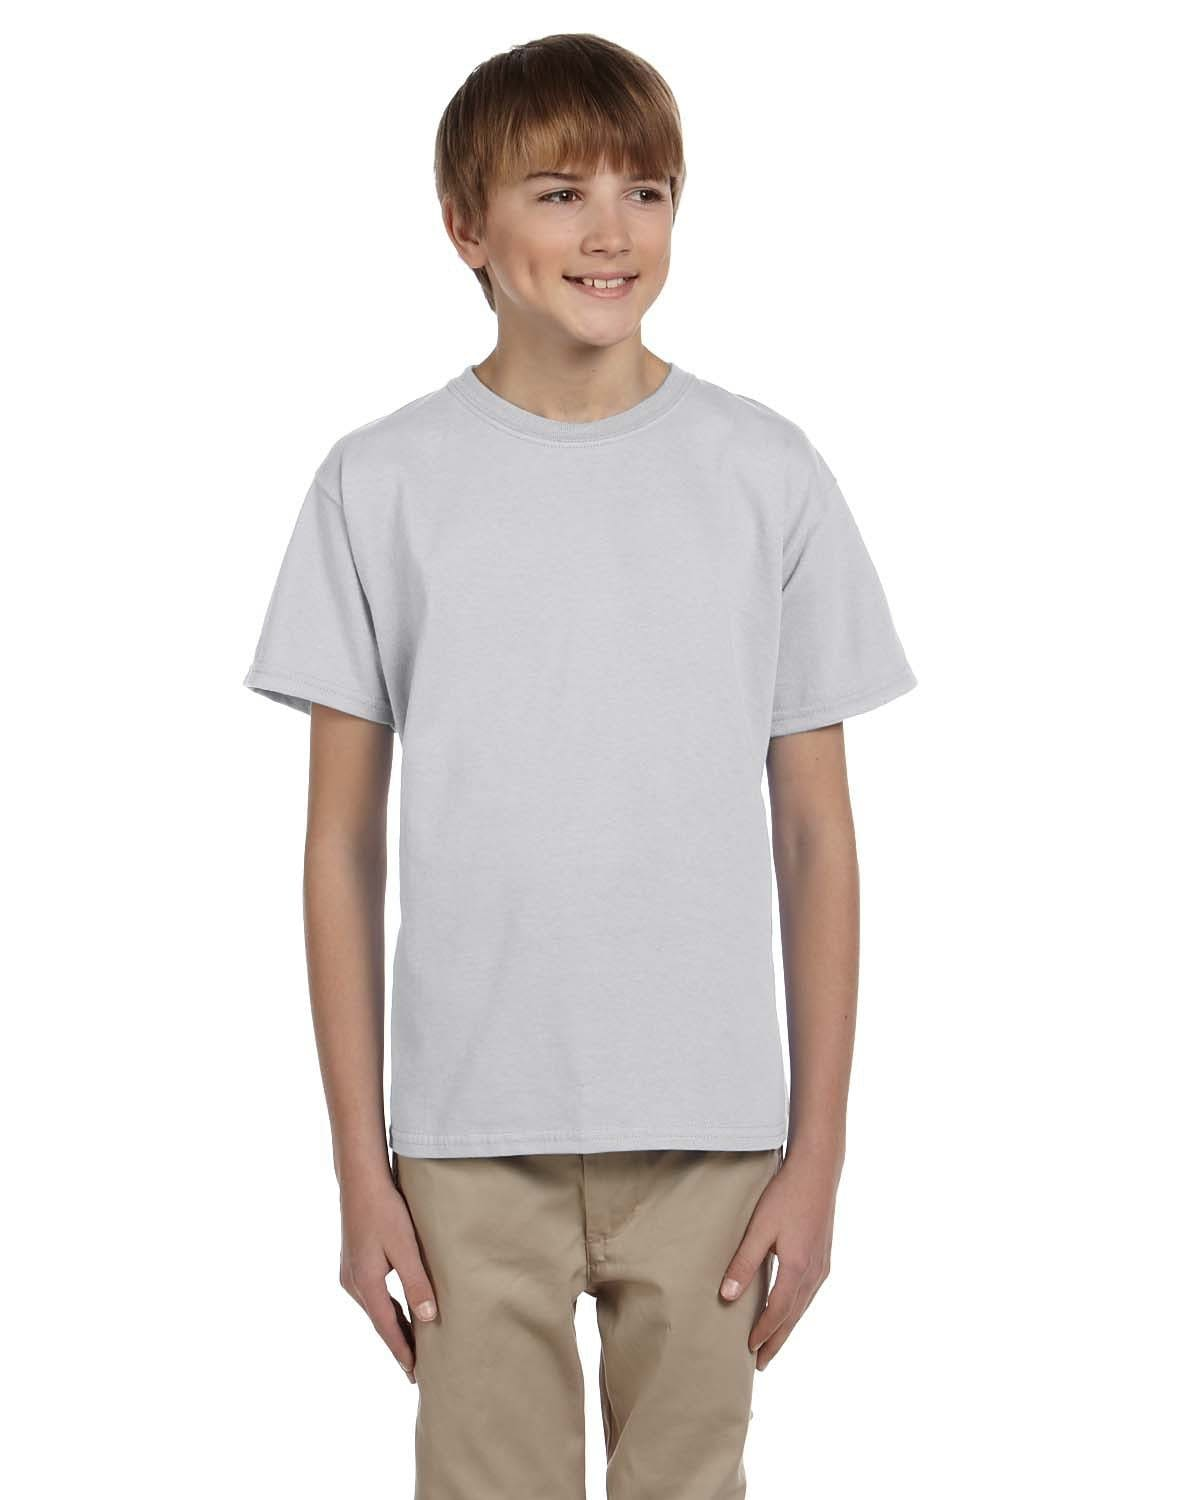 g200b-youth-ultra-cotton-6-oz-t-shirt-medium-large-Medium-ASH GREY-Oasispromos